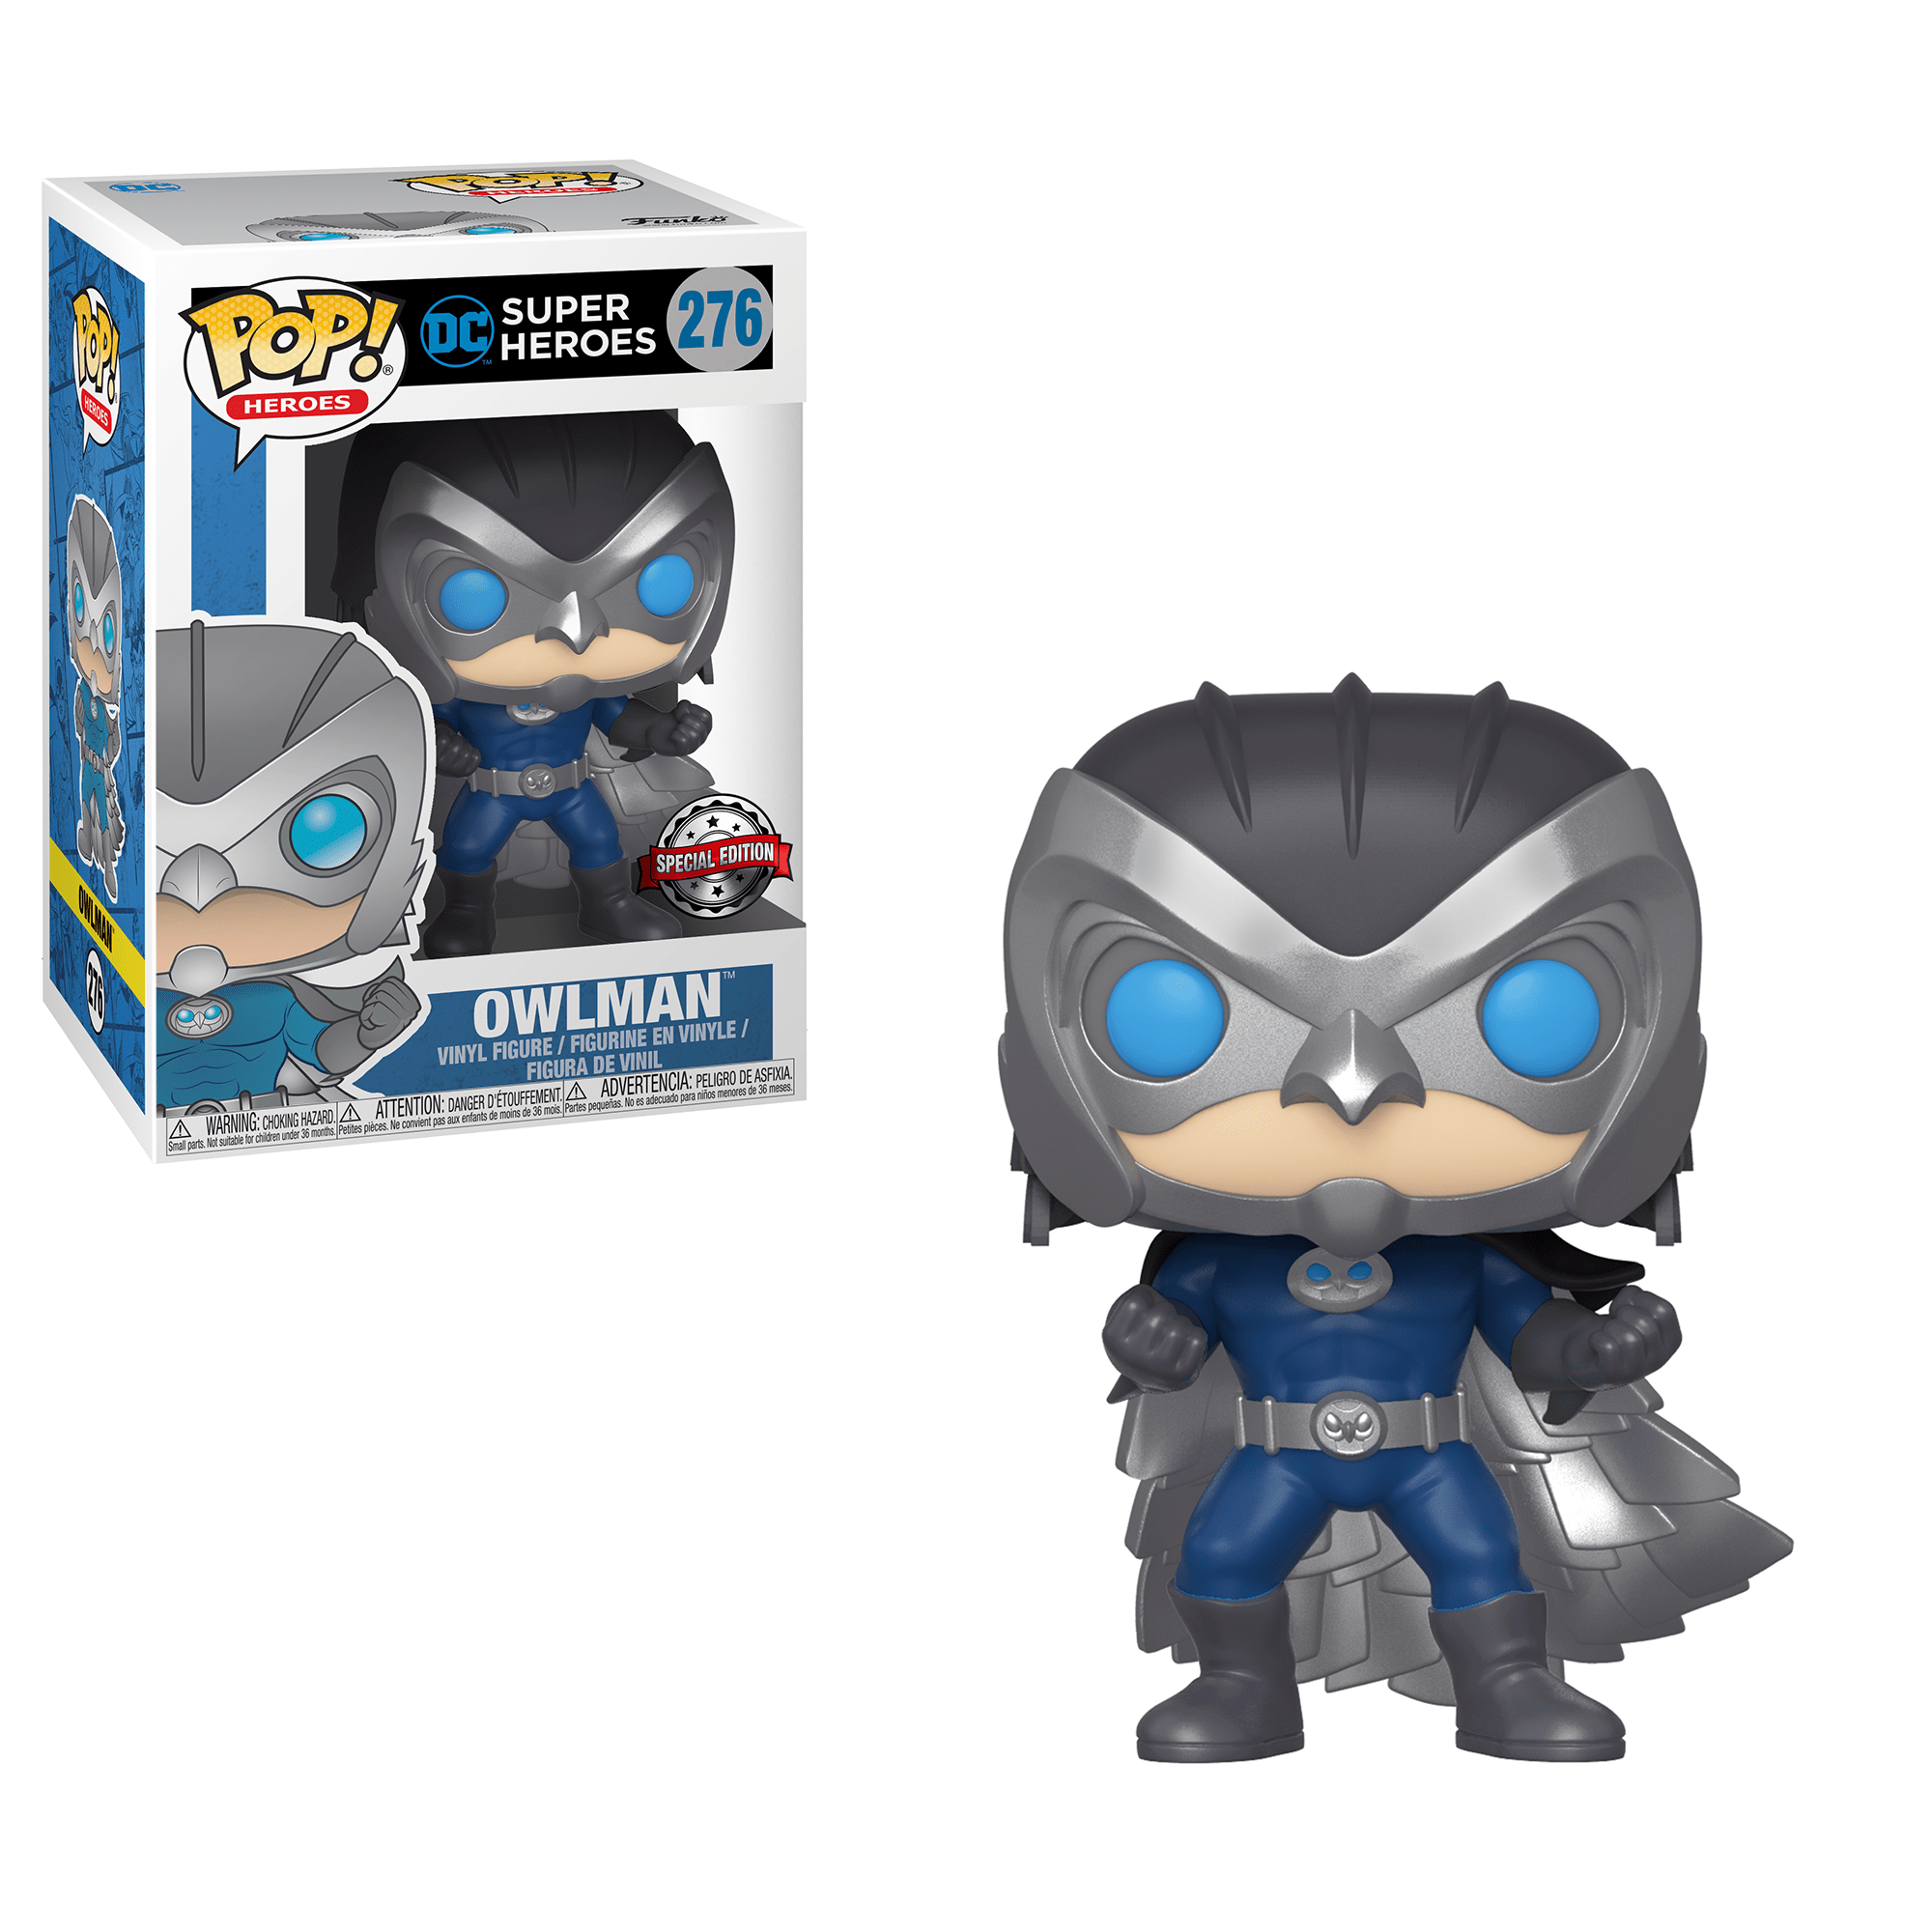 Funko Pop! Heroes - DC Super Heroes #276 - Owlman (Exclusive) - Simply Toys